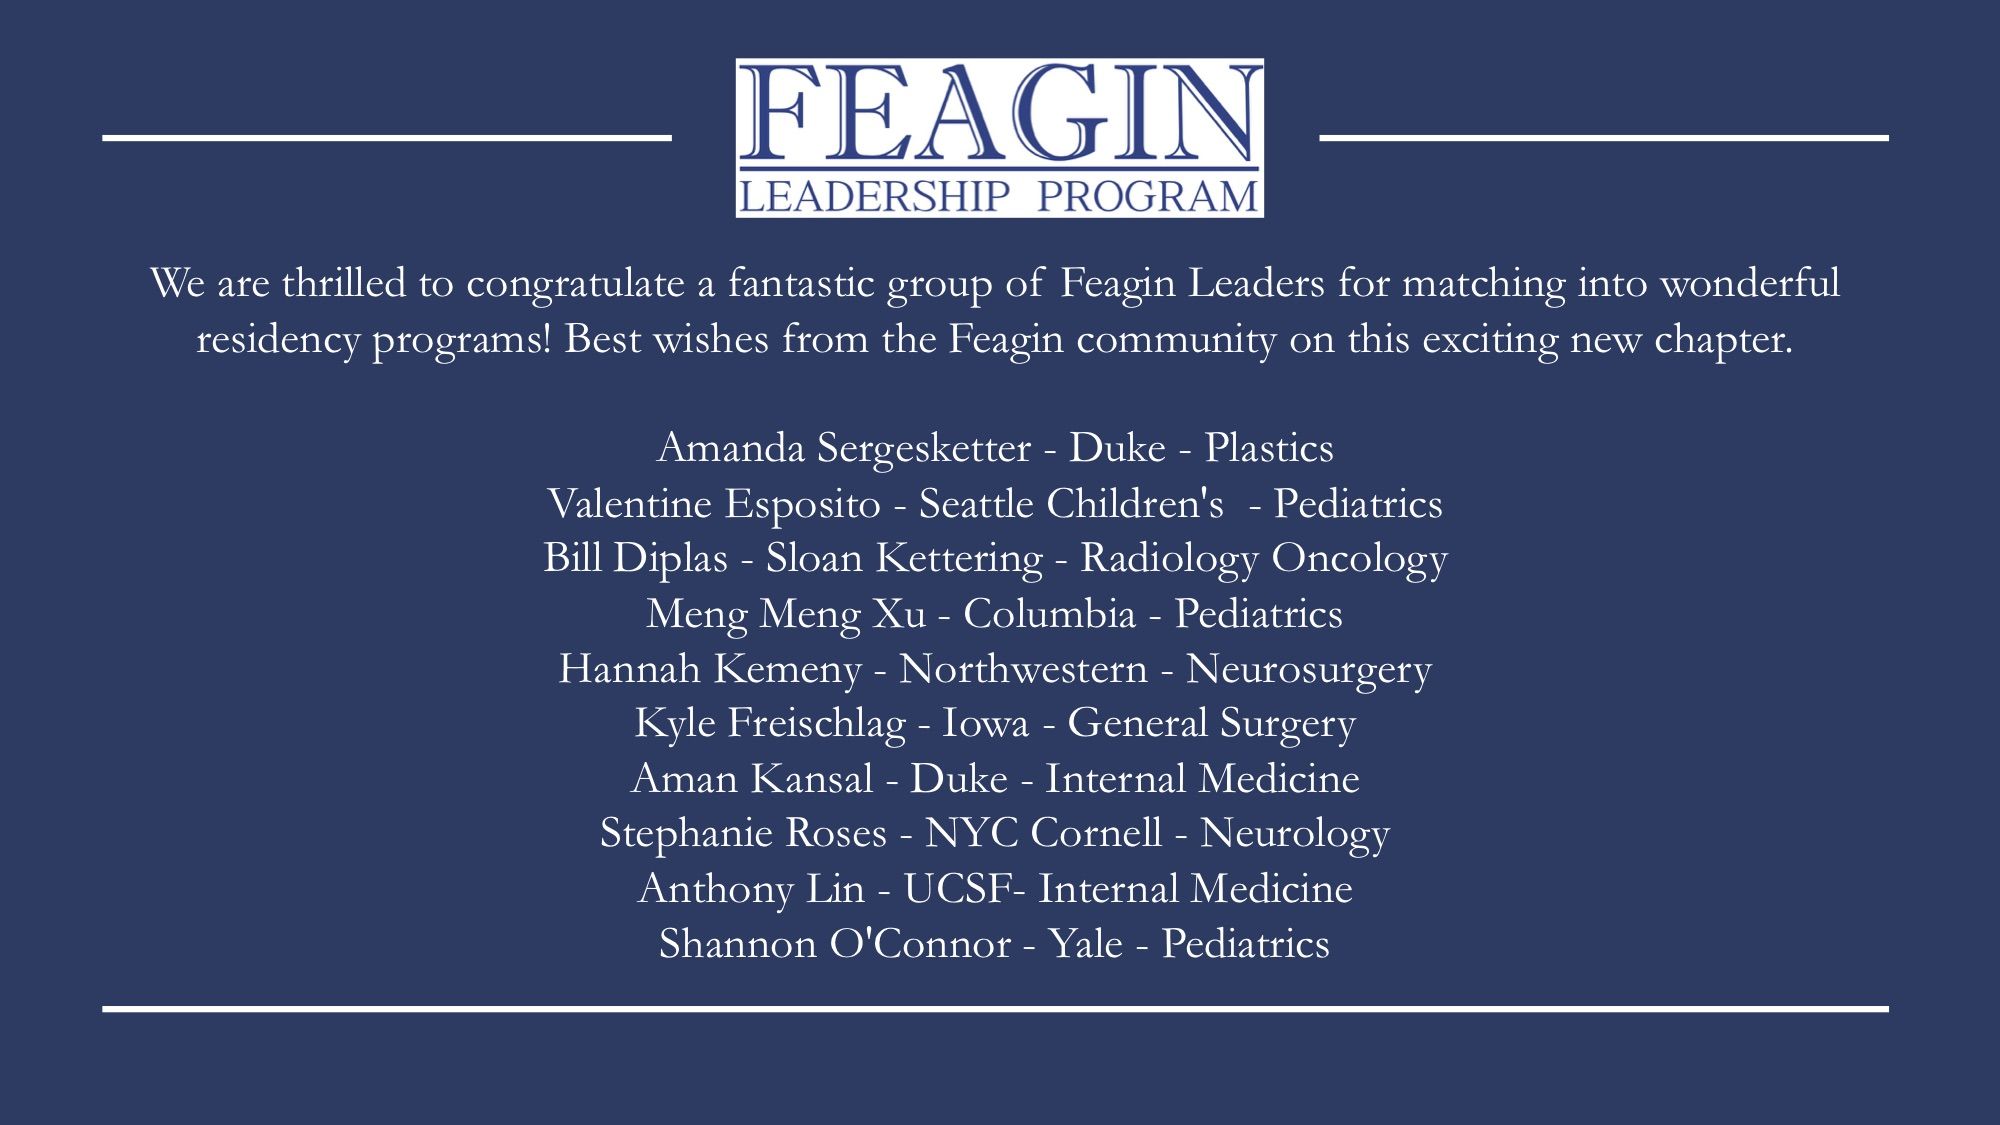 Feagin Leaders Match into Residency Programs — Feagin Leadership Program